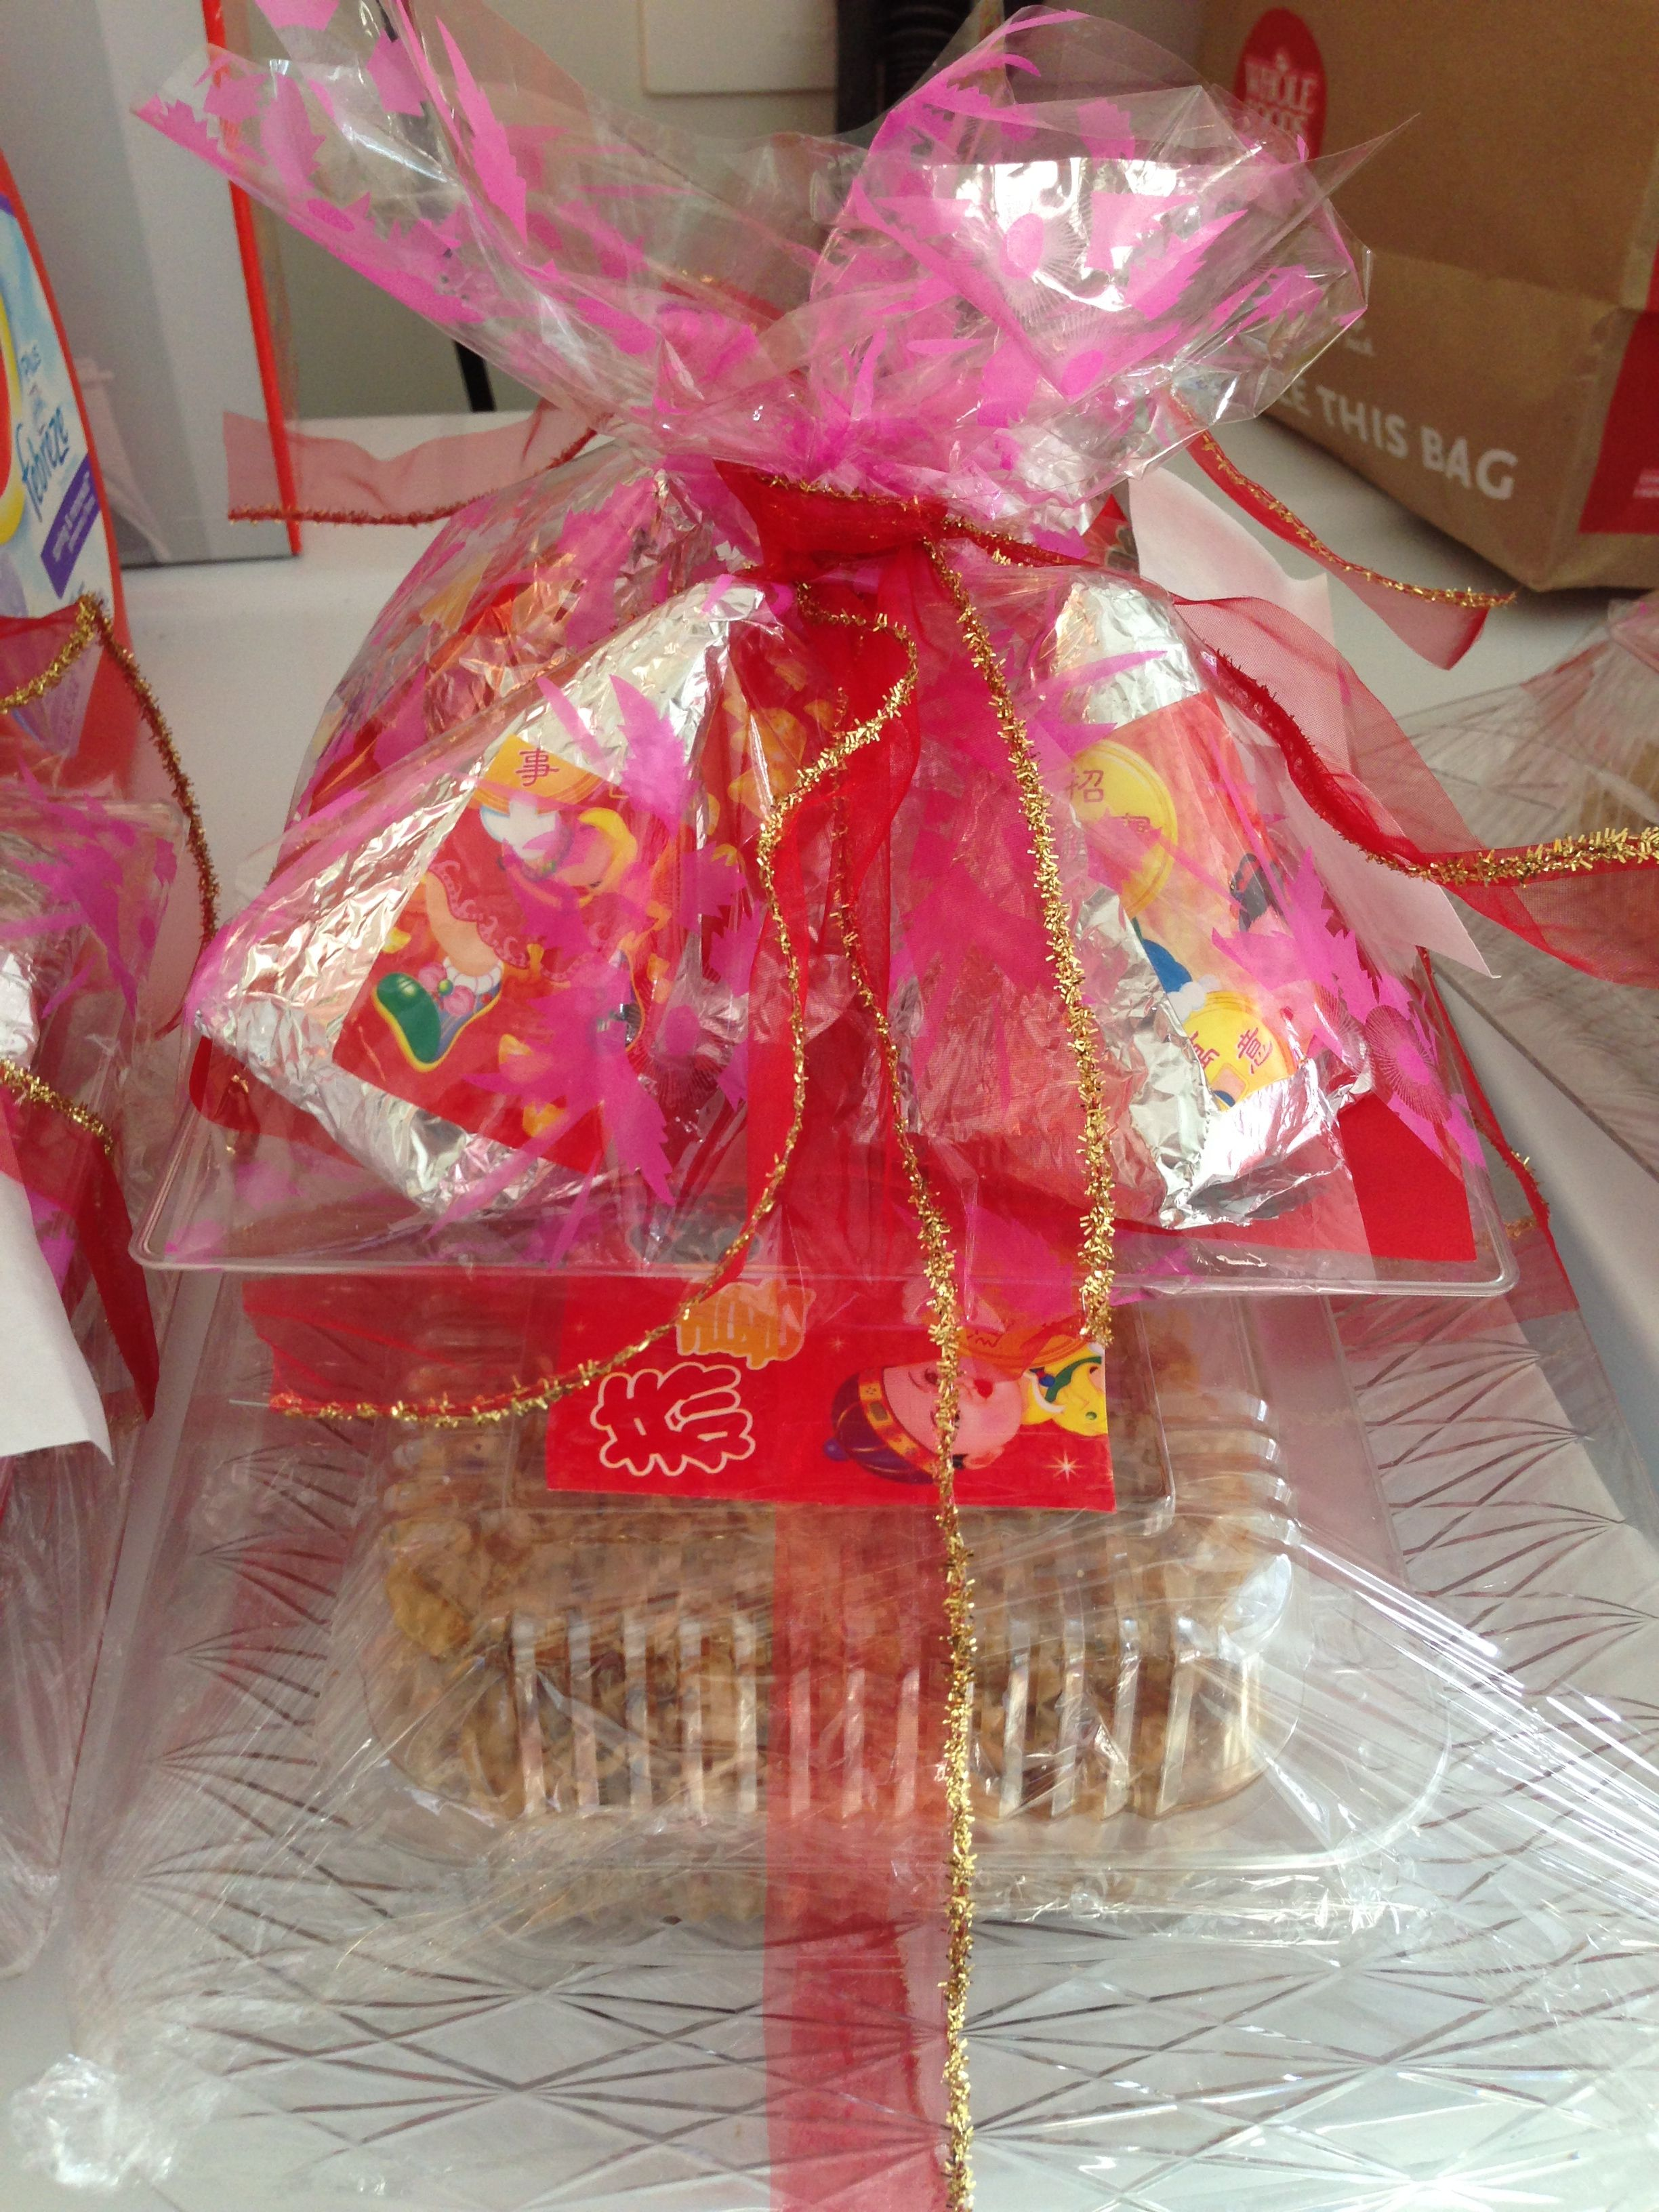 Early Vietnamese new year gift